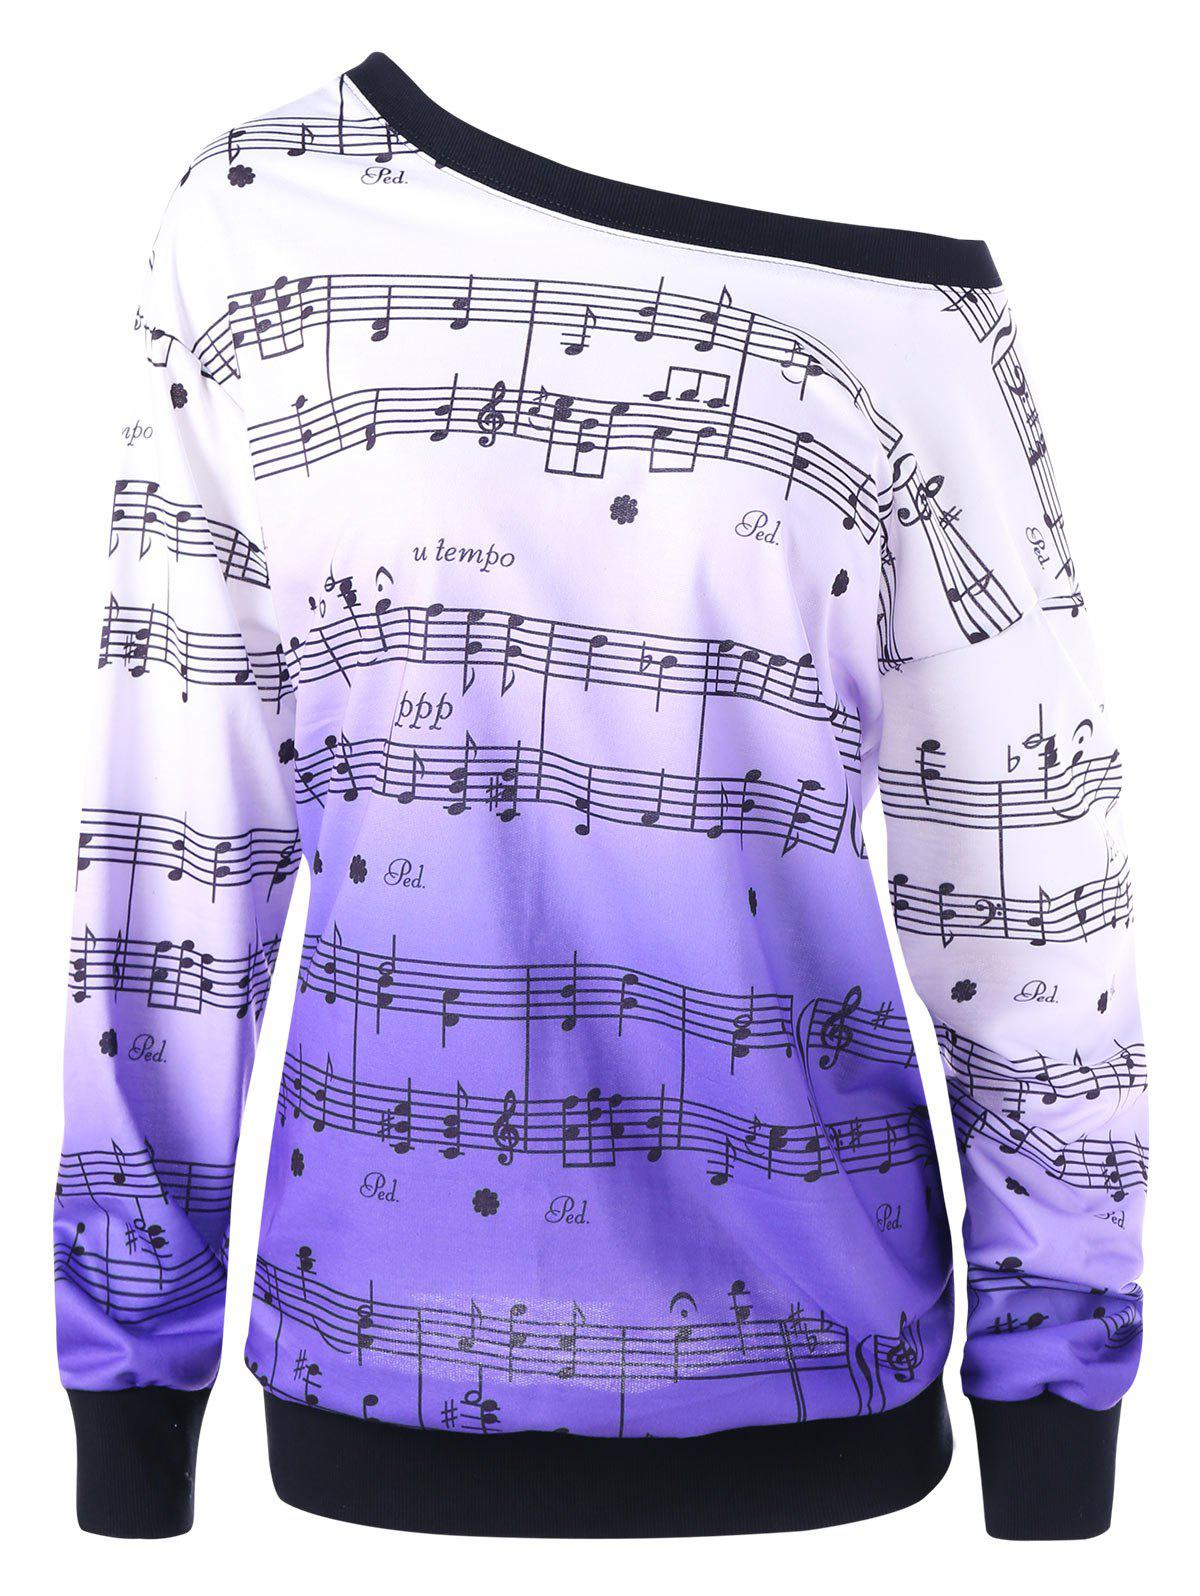 Sweat-shirt Imprimé Notes Musicales Encolure Cloutée Grande Taille